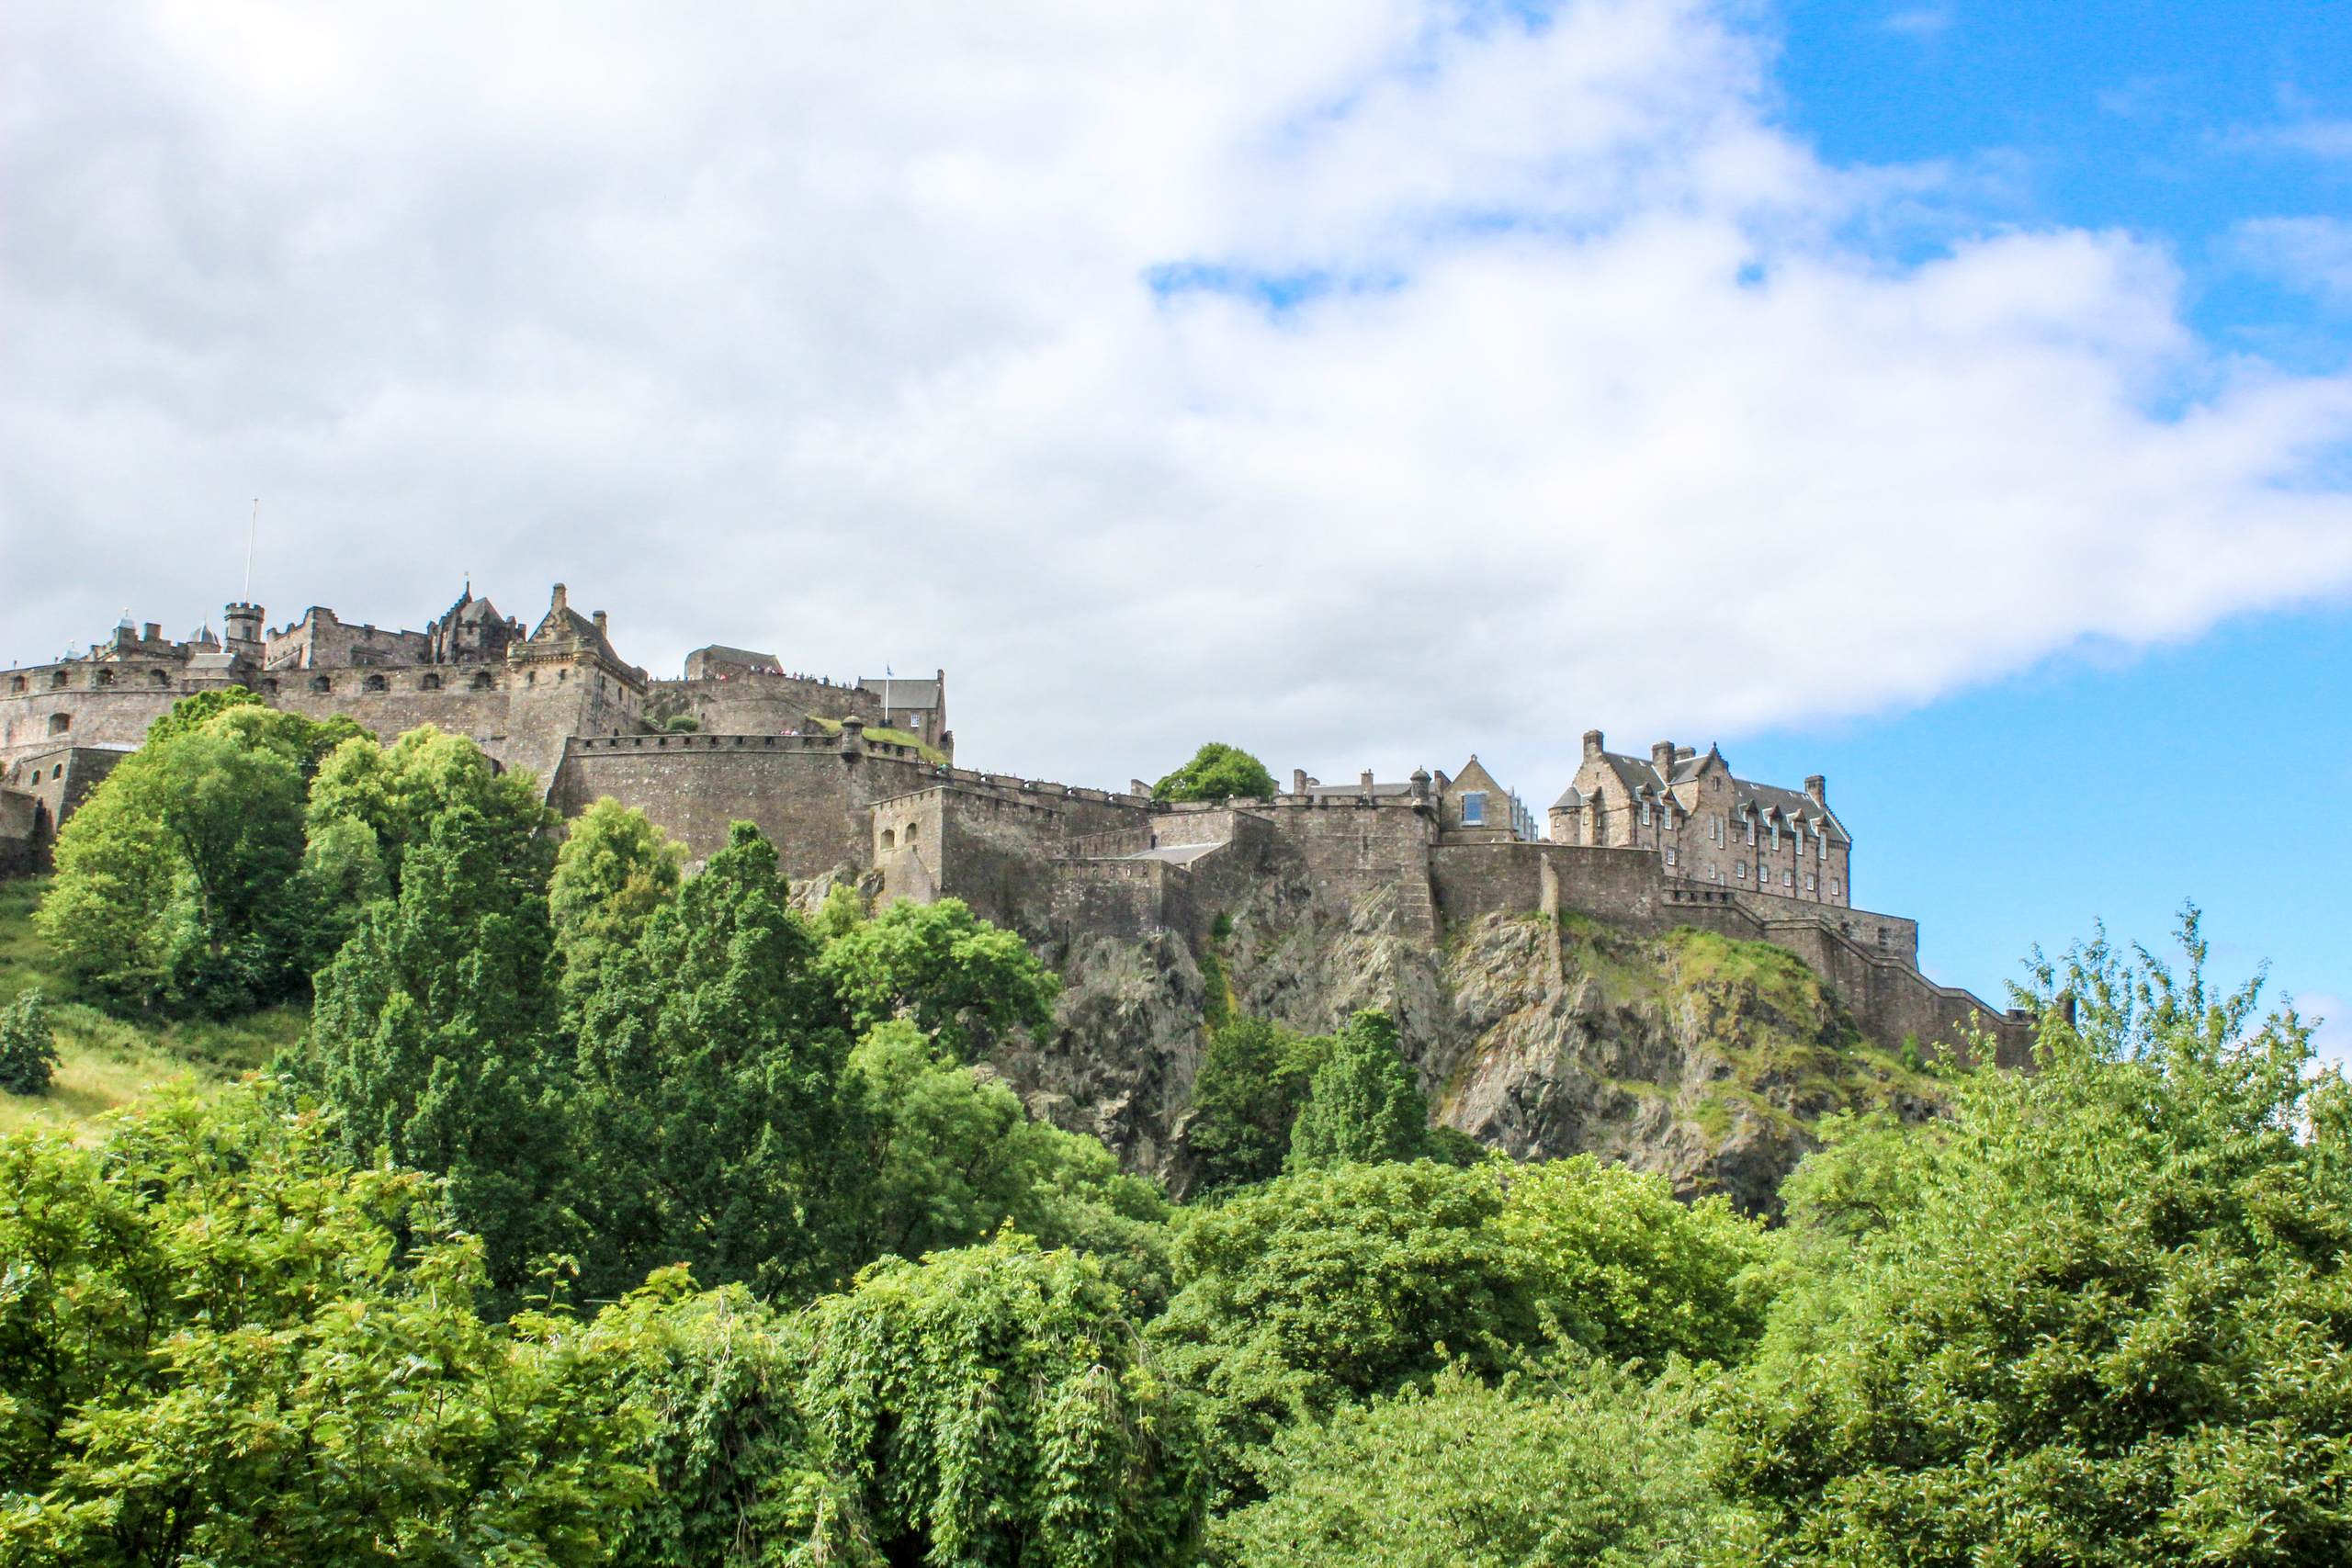 take a city break to edinburgh and see the castle